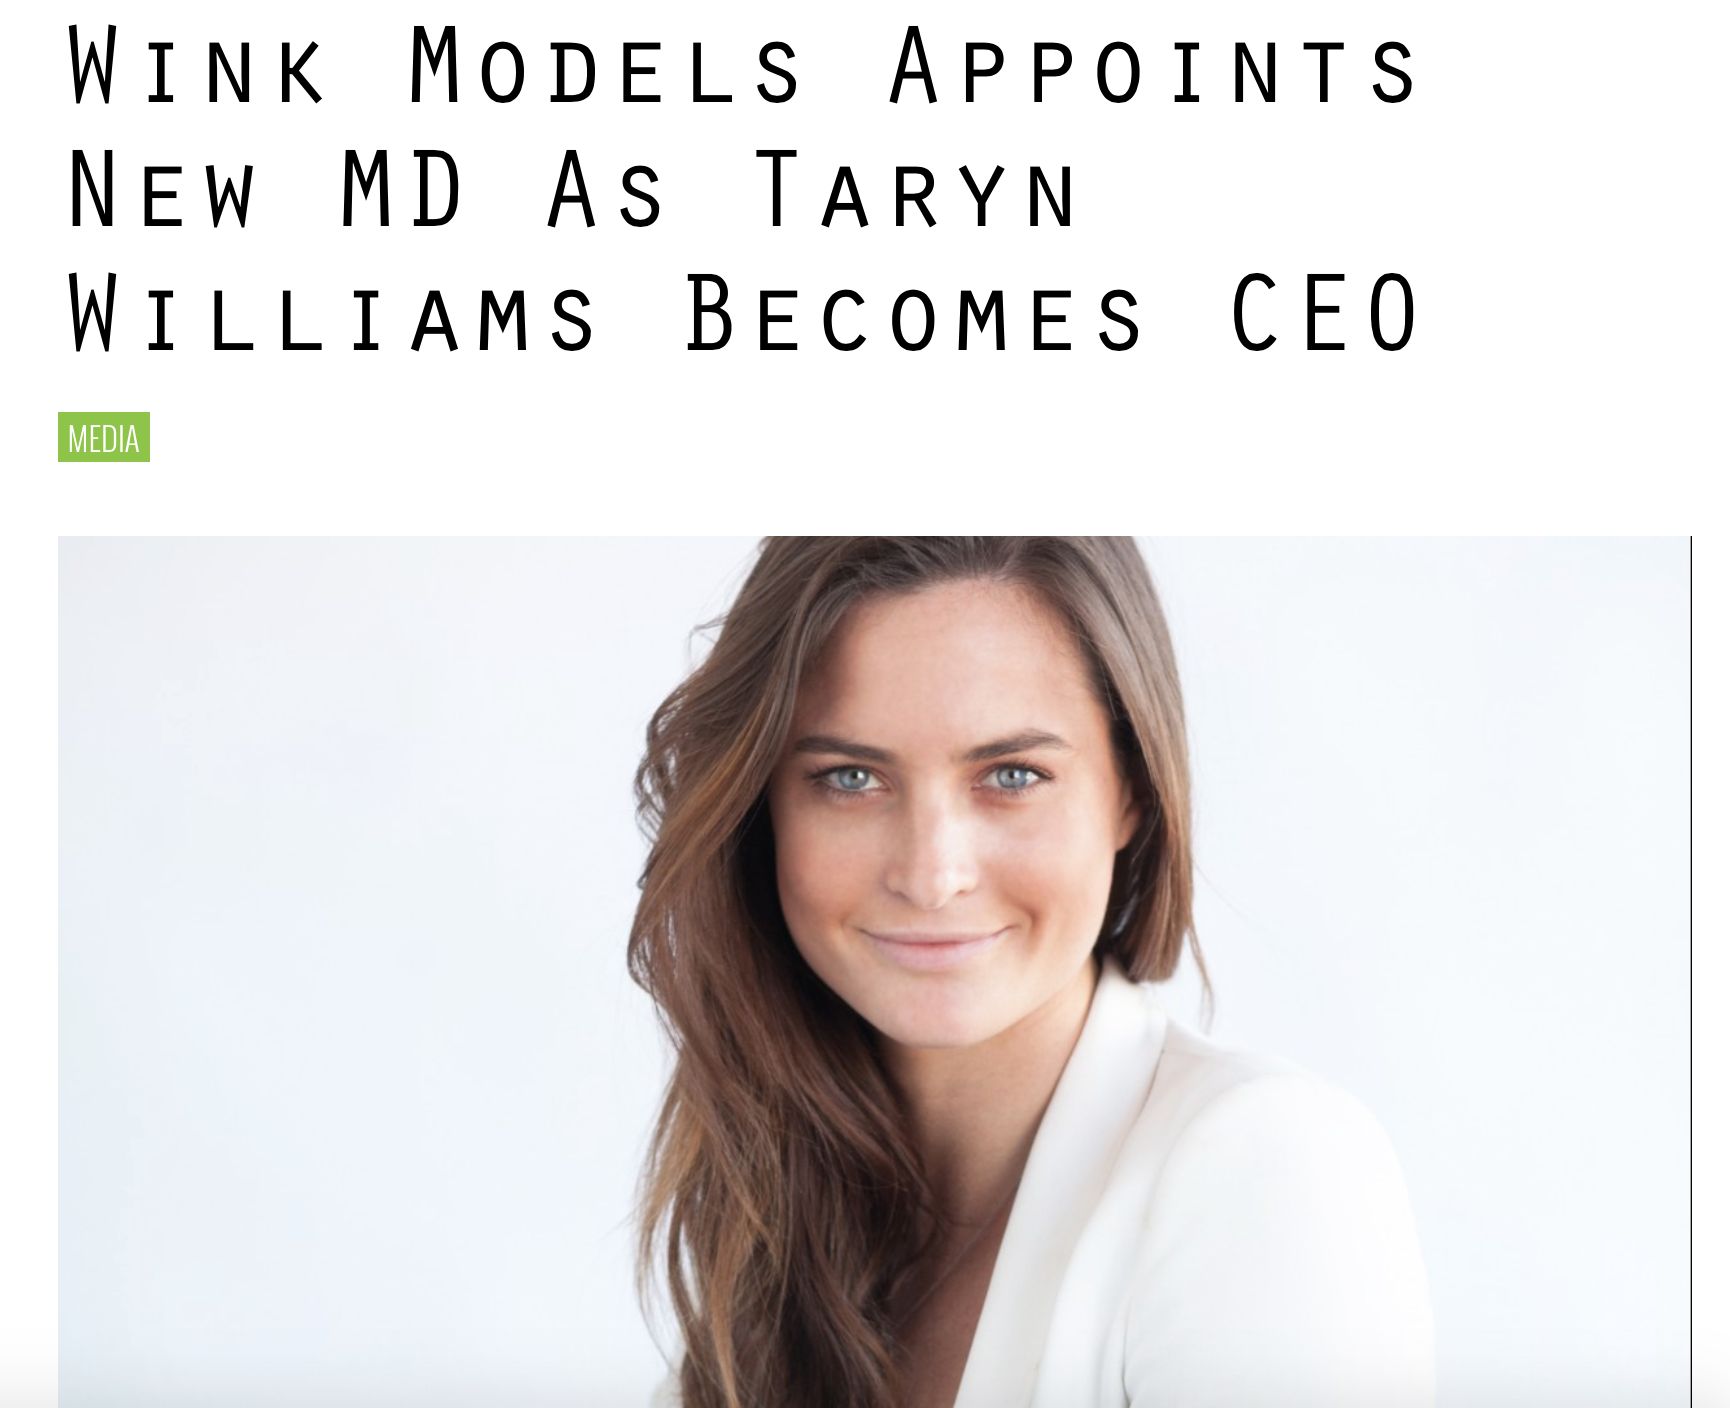 http://www.bandt.com.au/media/wink-models-appoints-new-md-taryn-williams-becomes-ceo